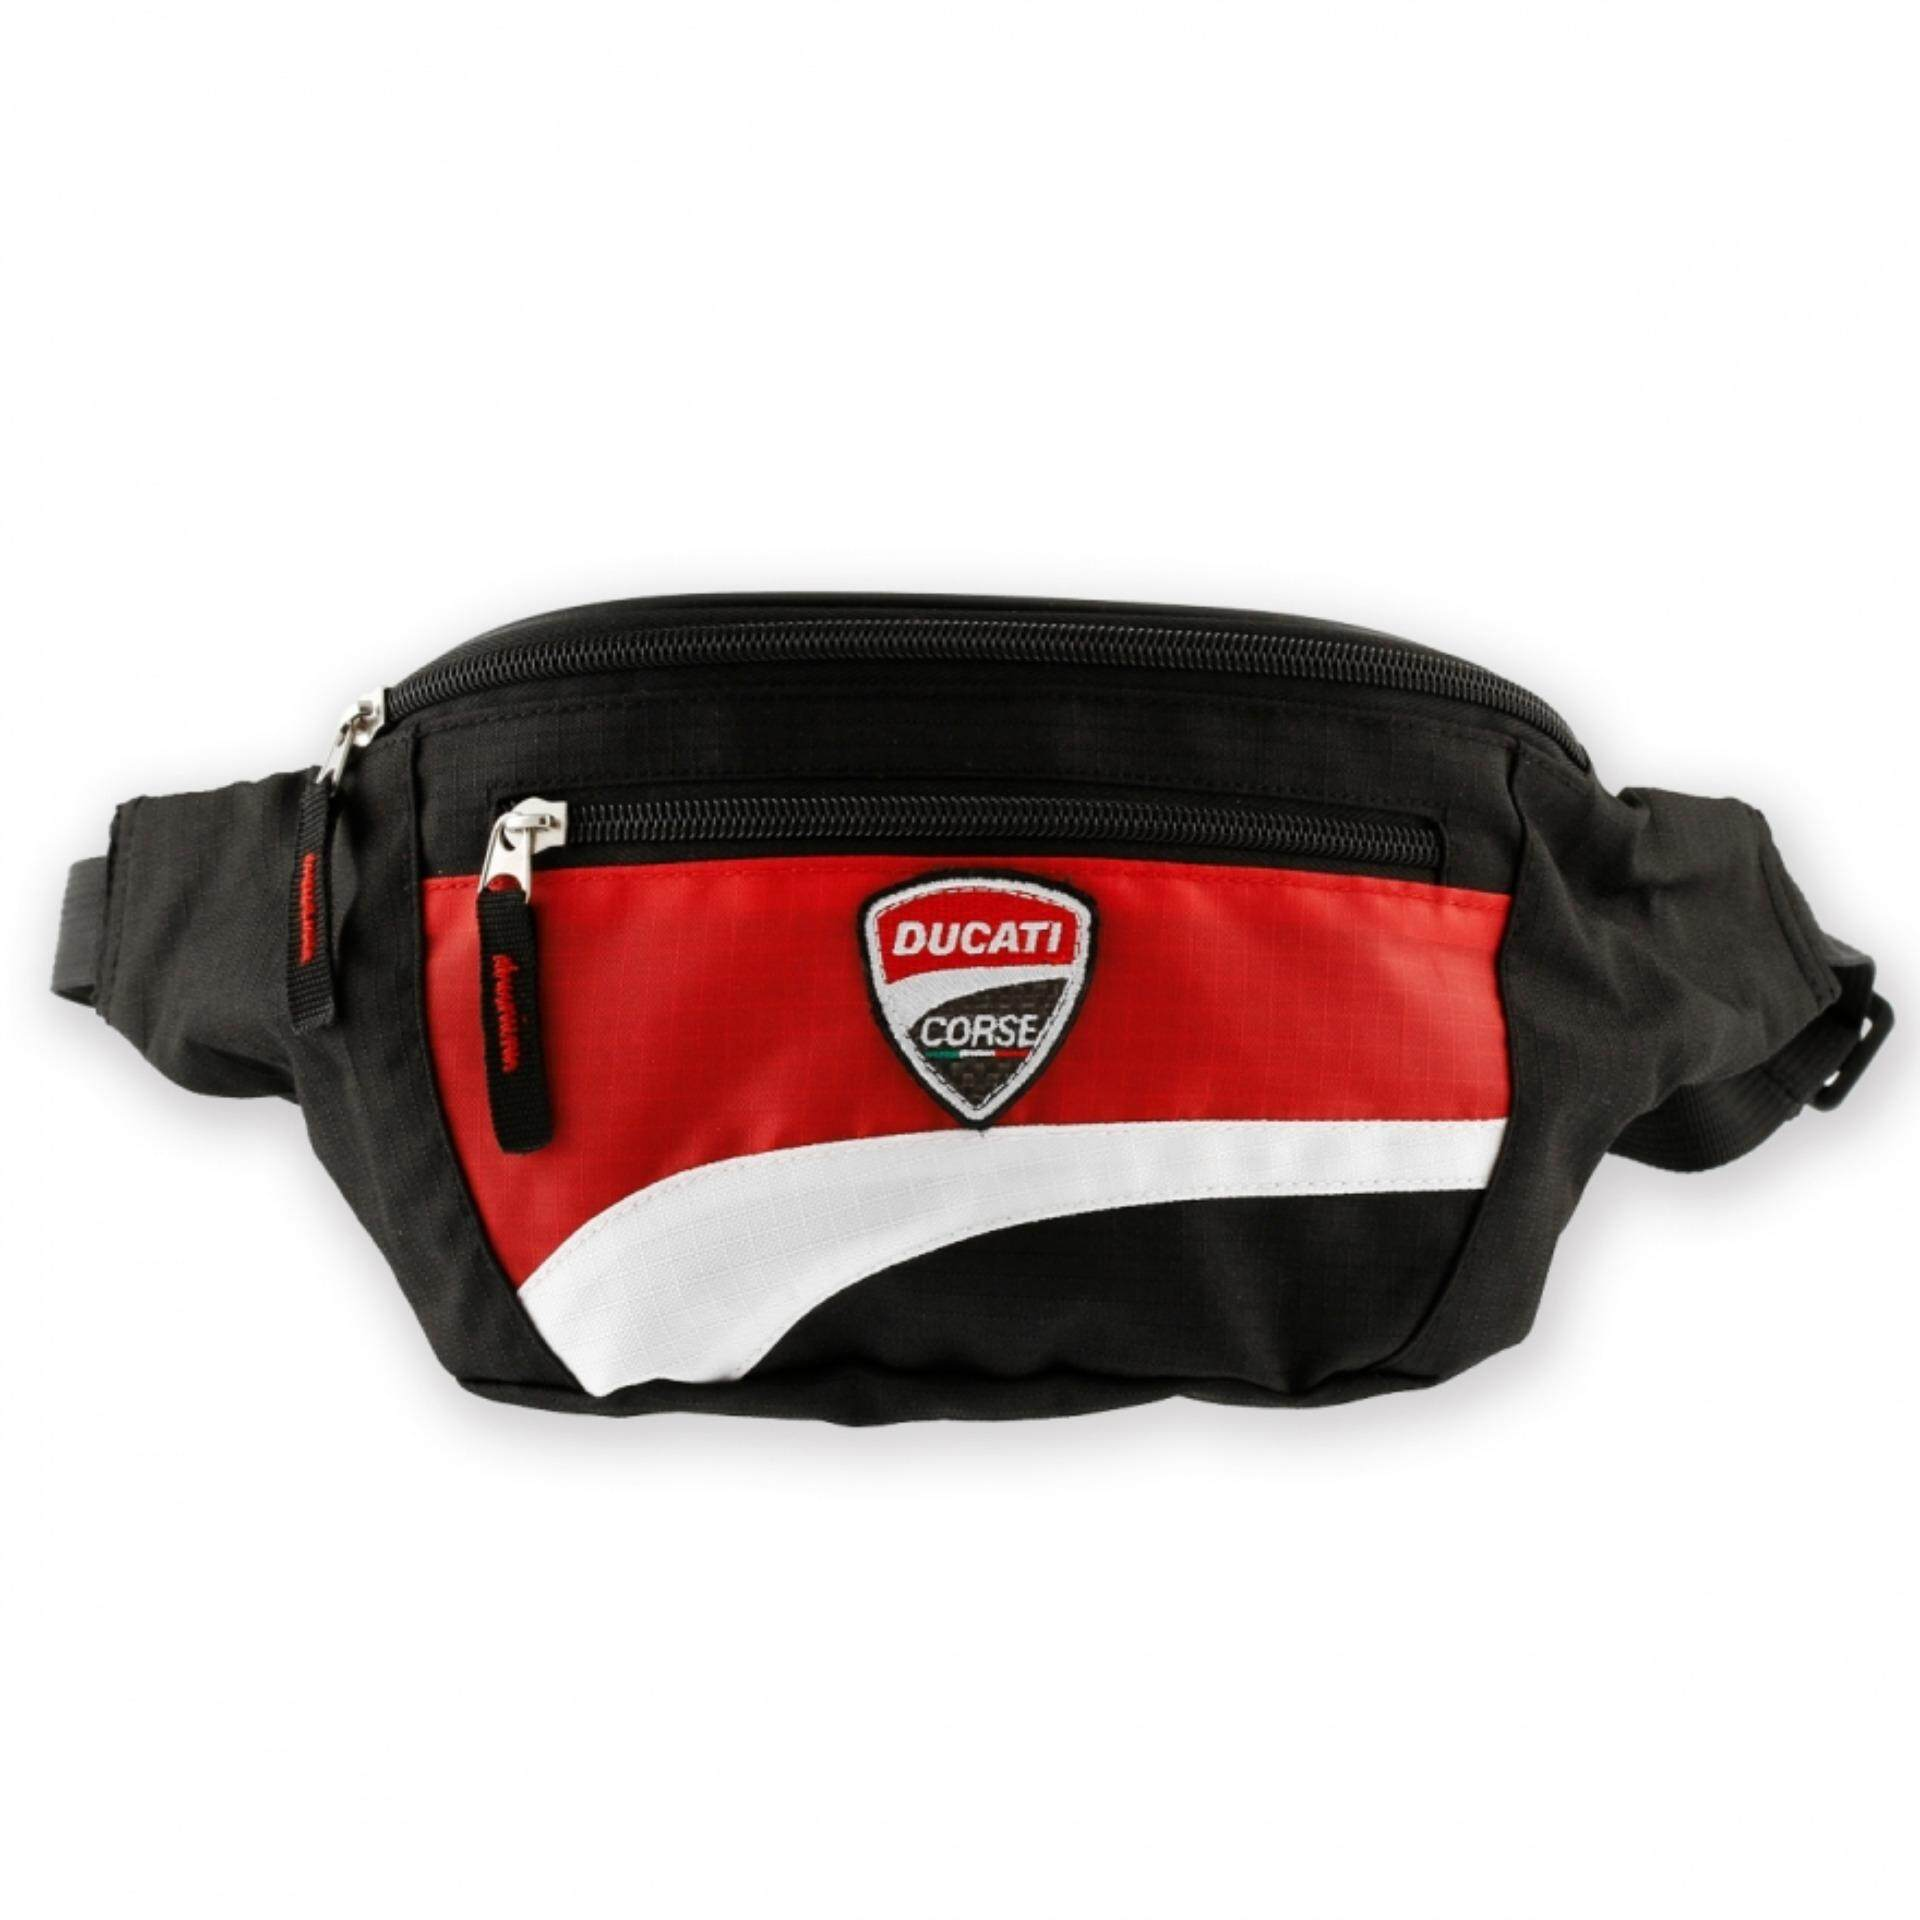 100% Authentic - Ducati Corse 12 Waist Bag 987675345 adc15413ad